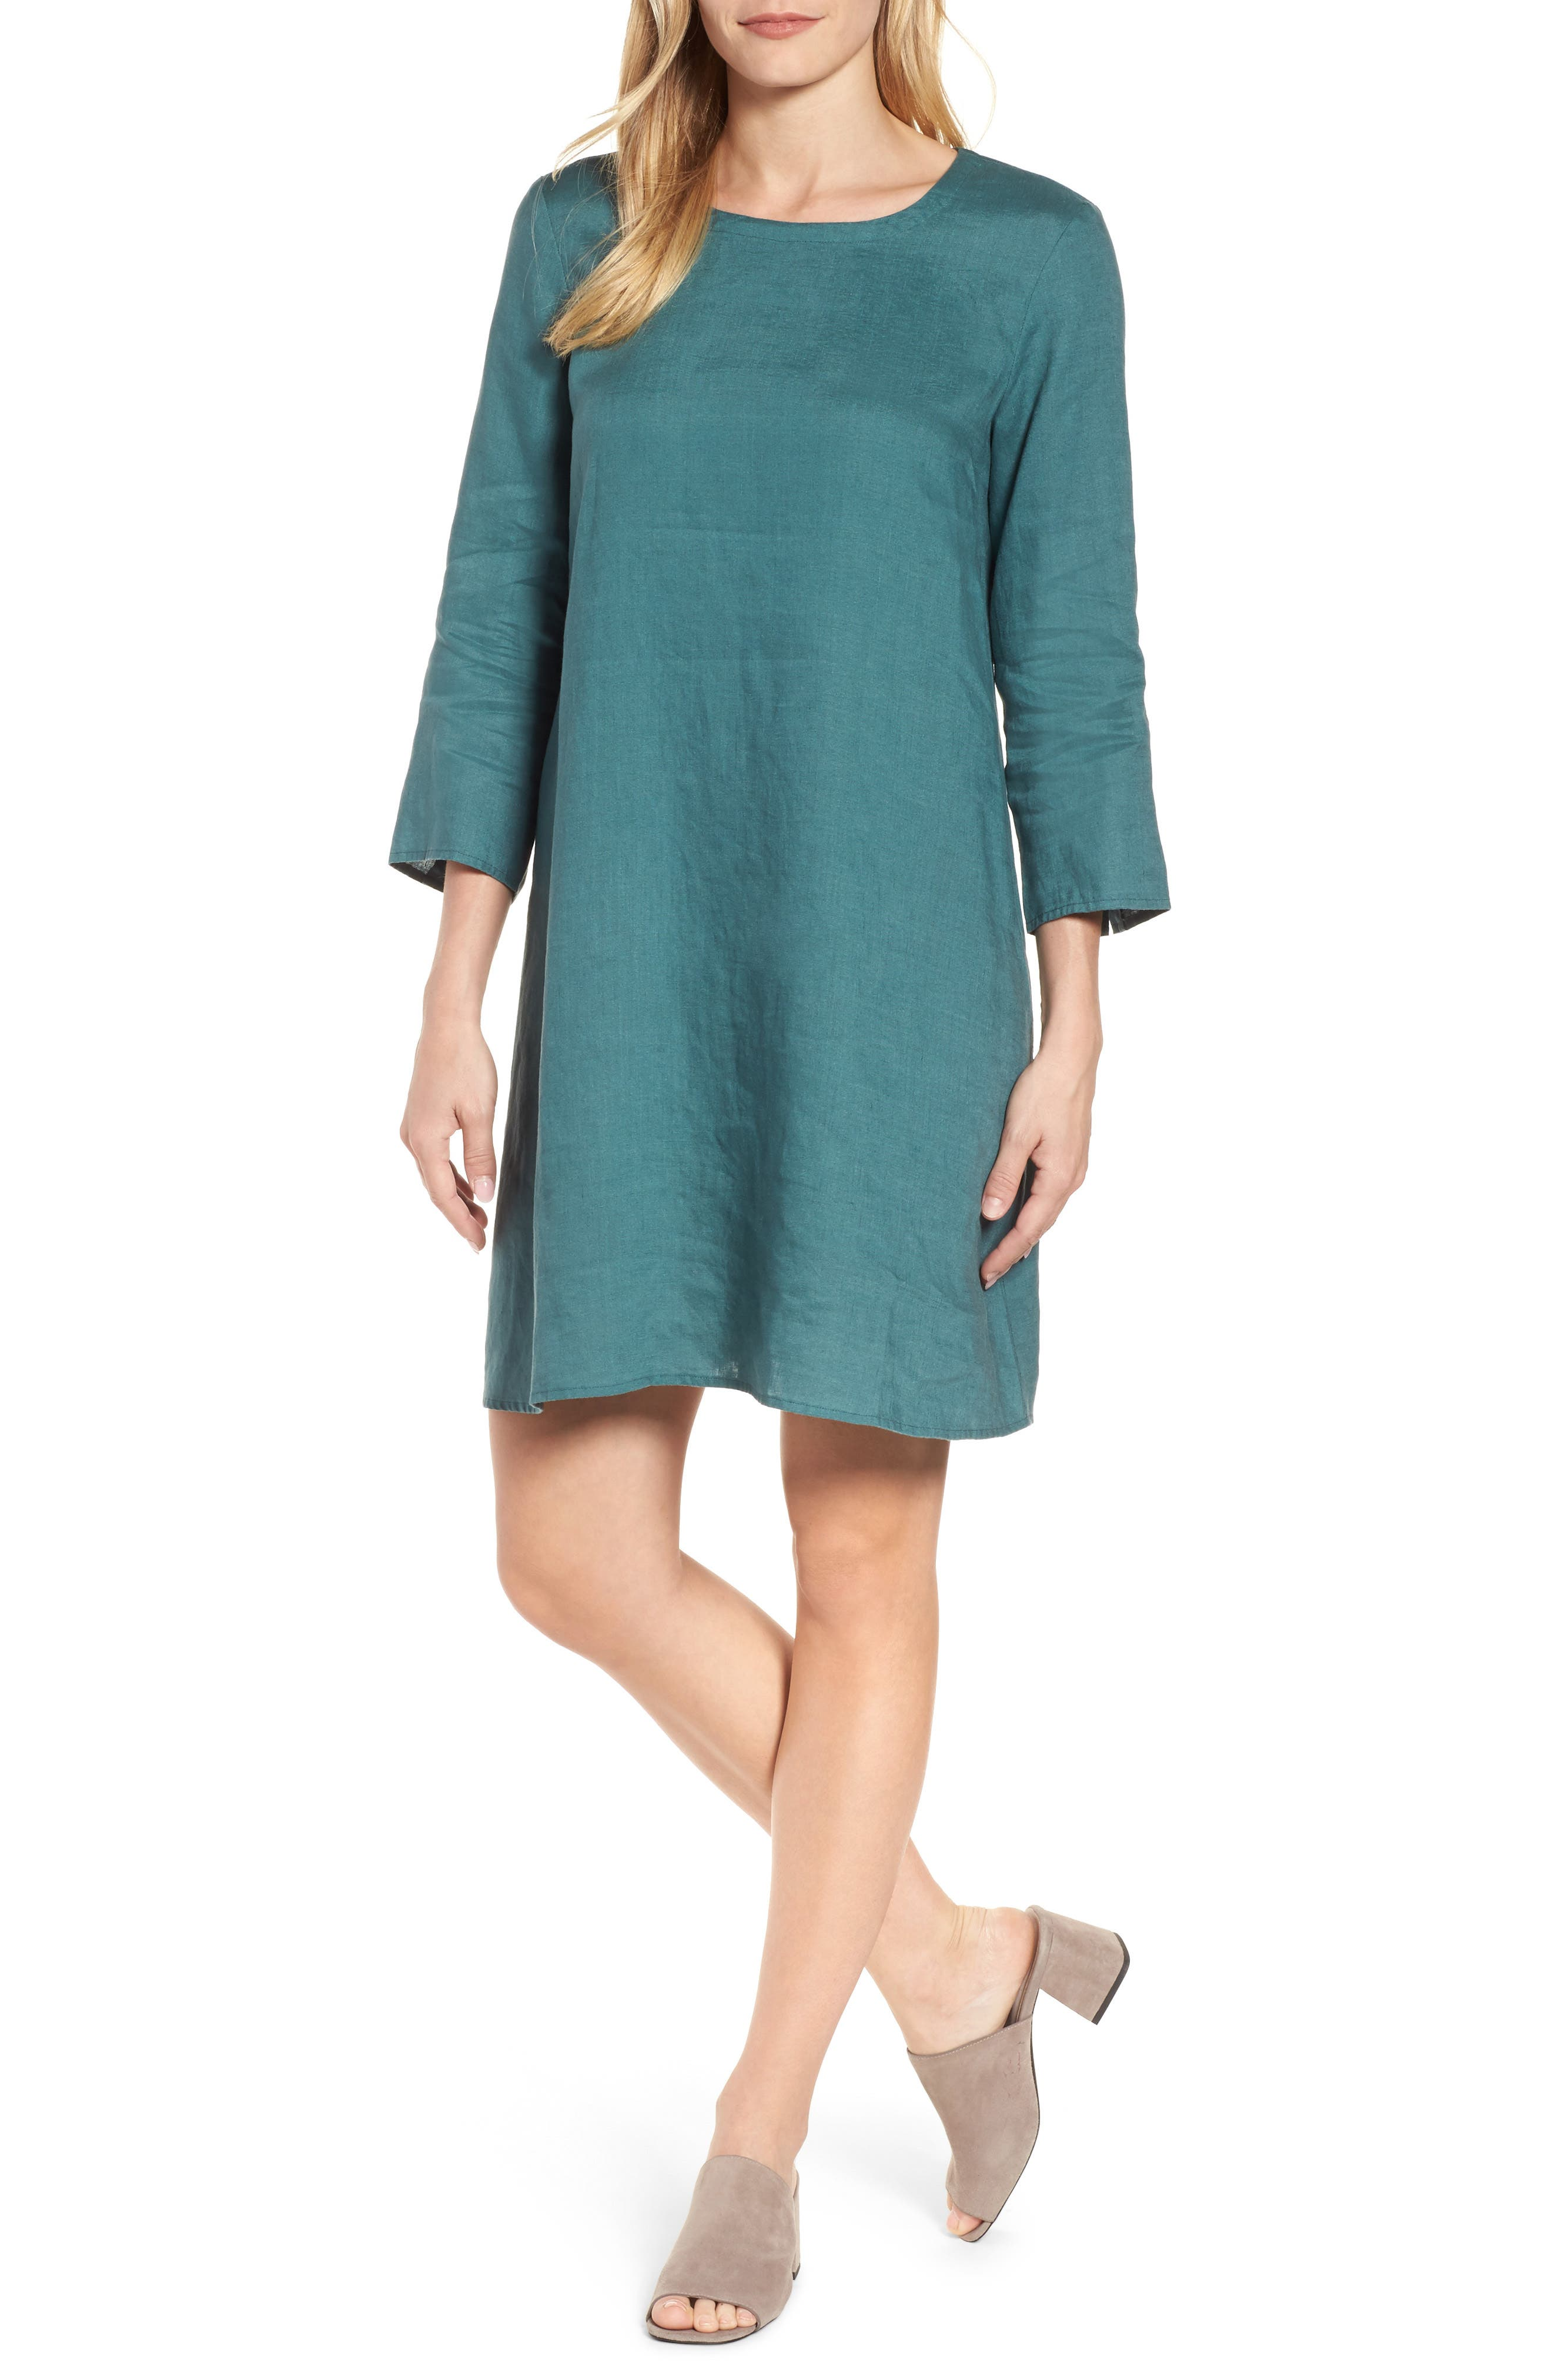 Organic Linen Round Neck Shift Dress,                         Main,                         color, Teal